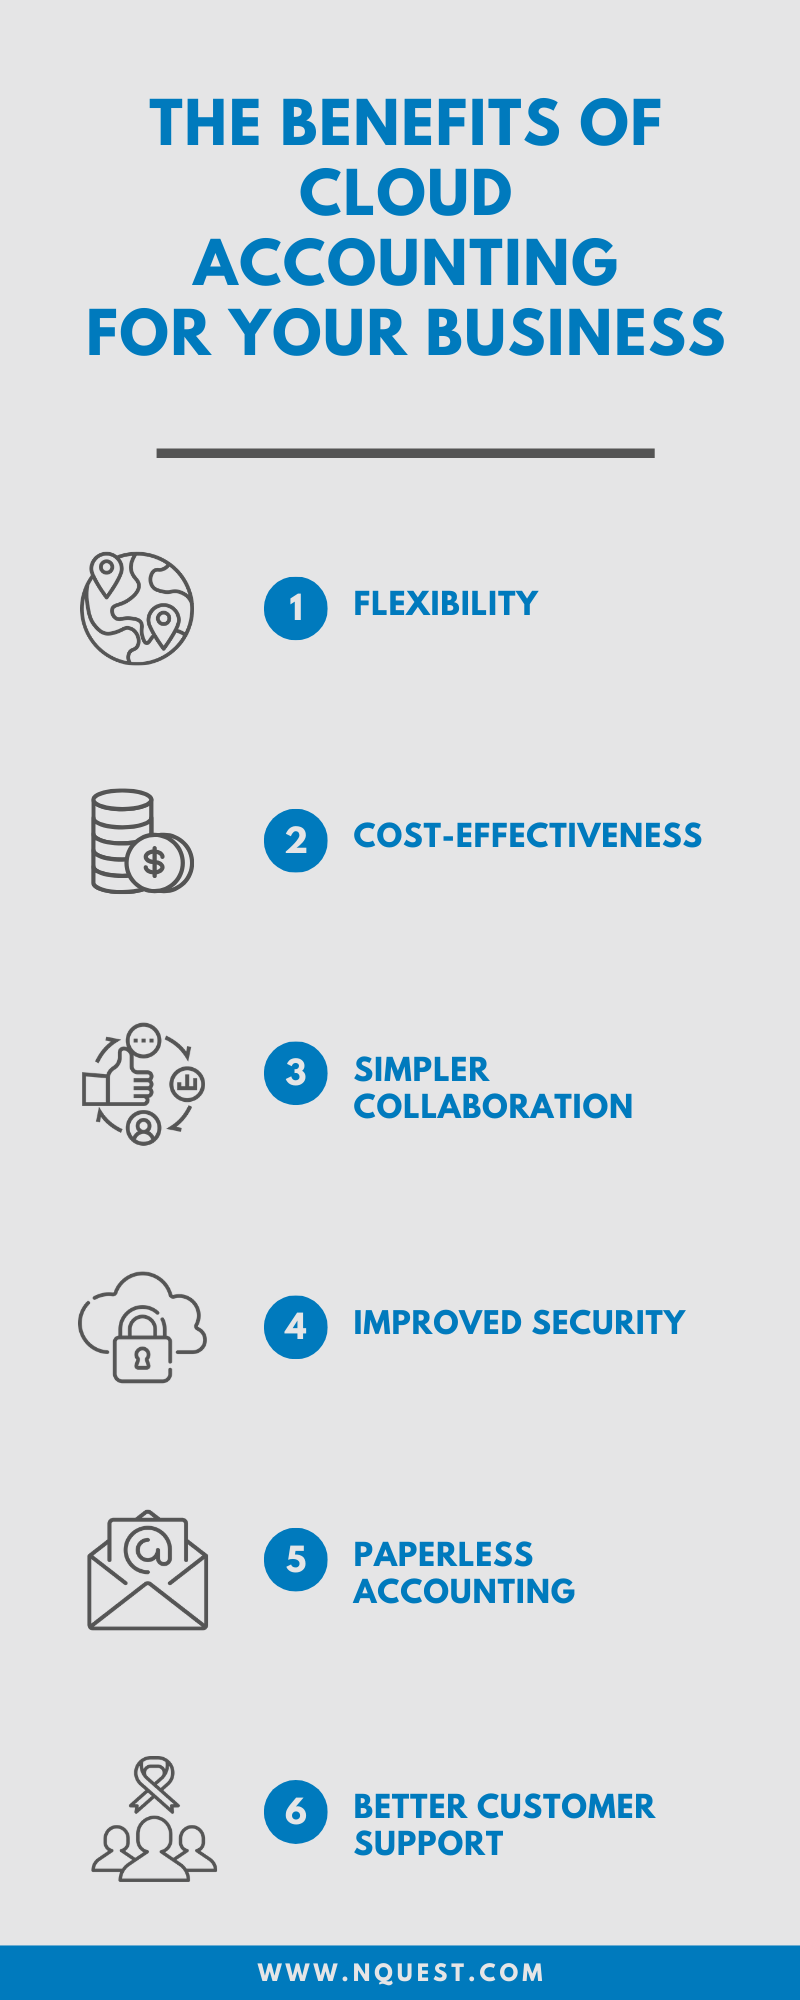 the benefits of cloud accounting for your business infographic